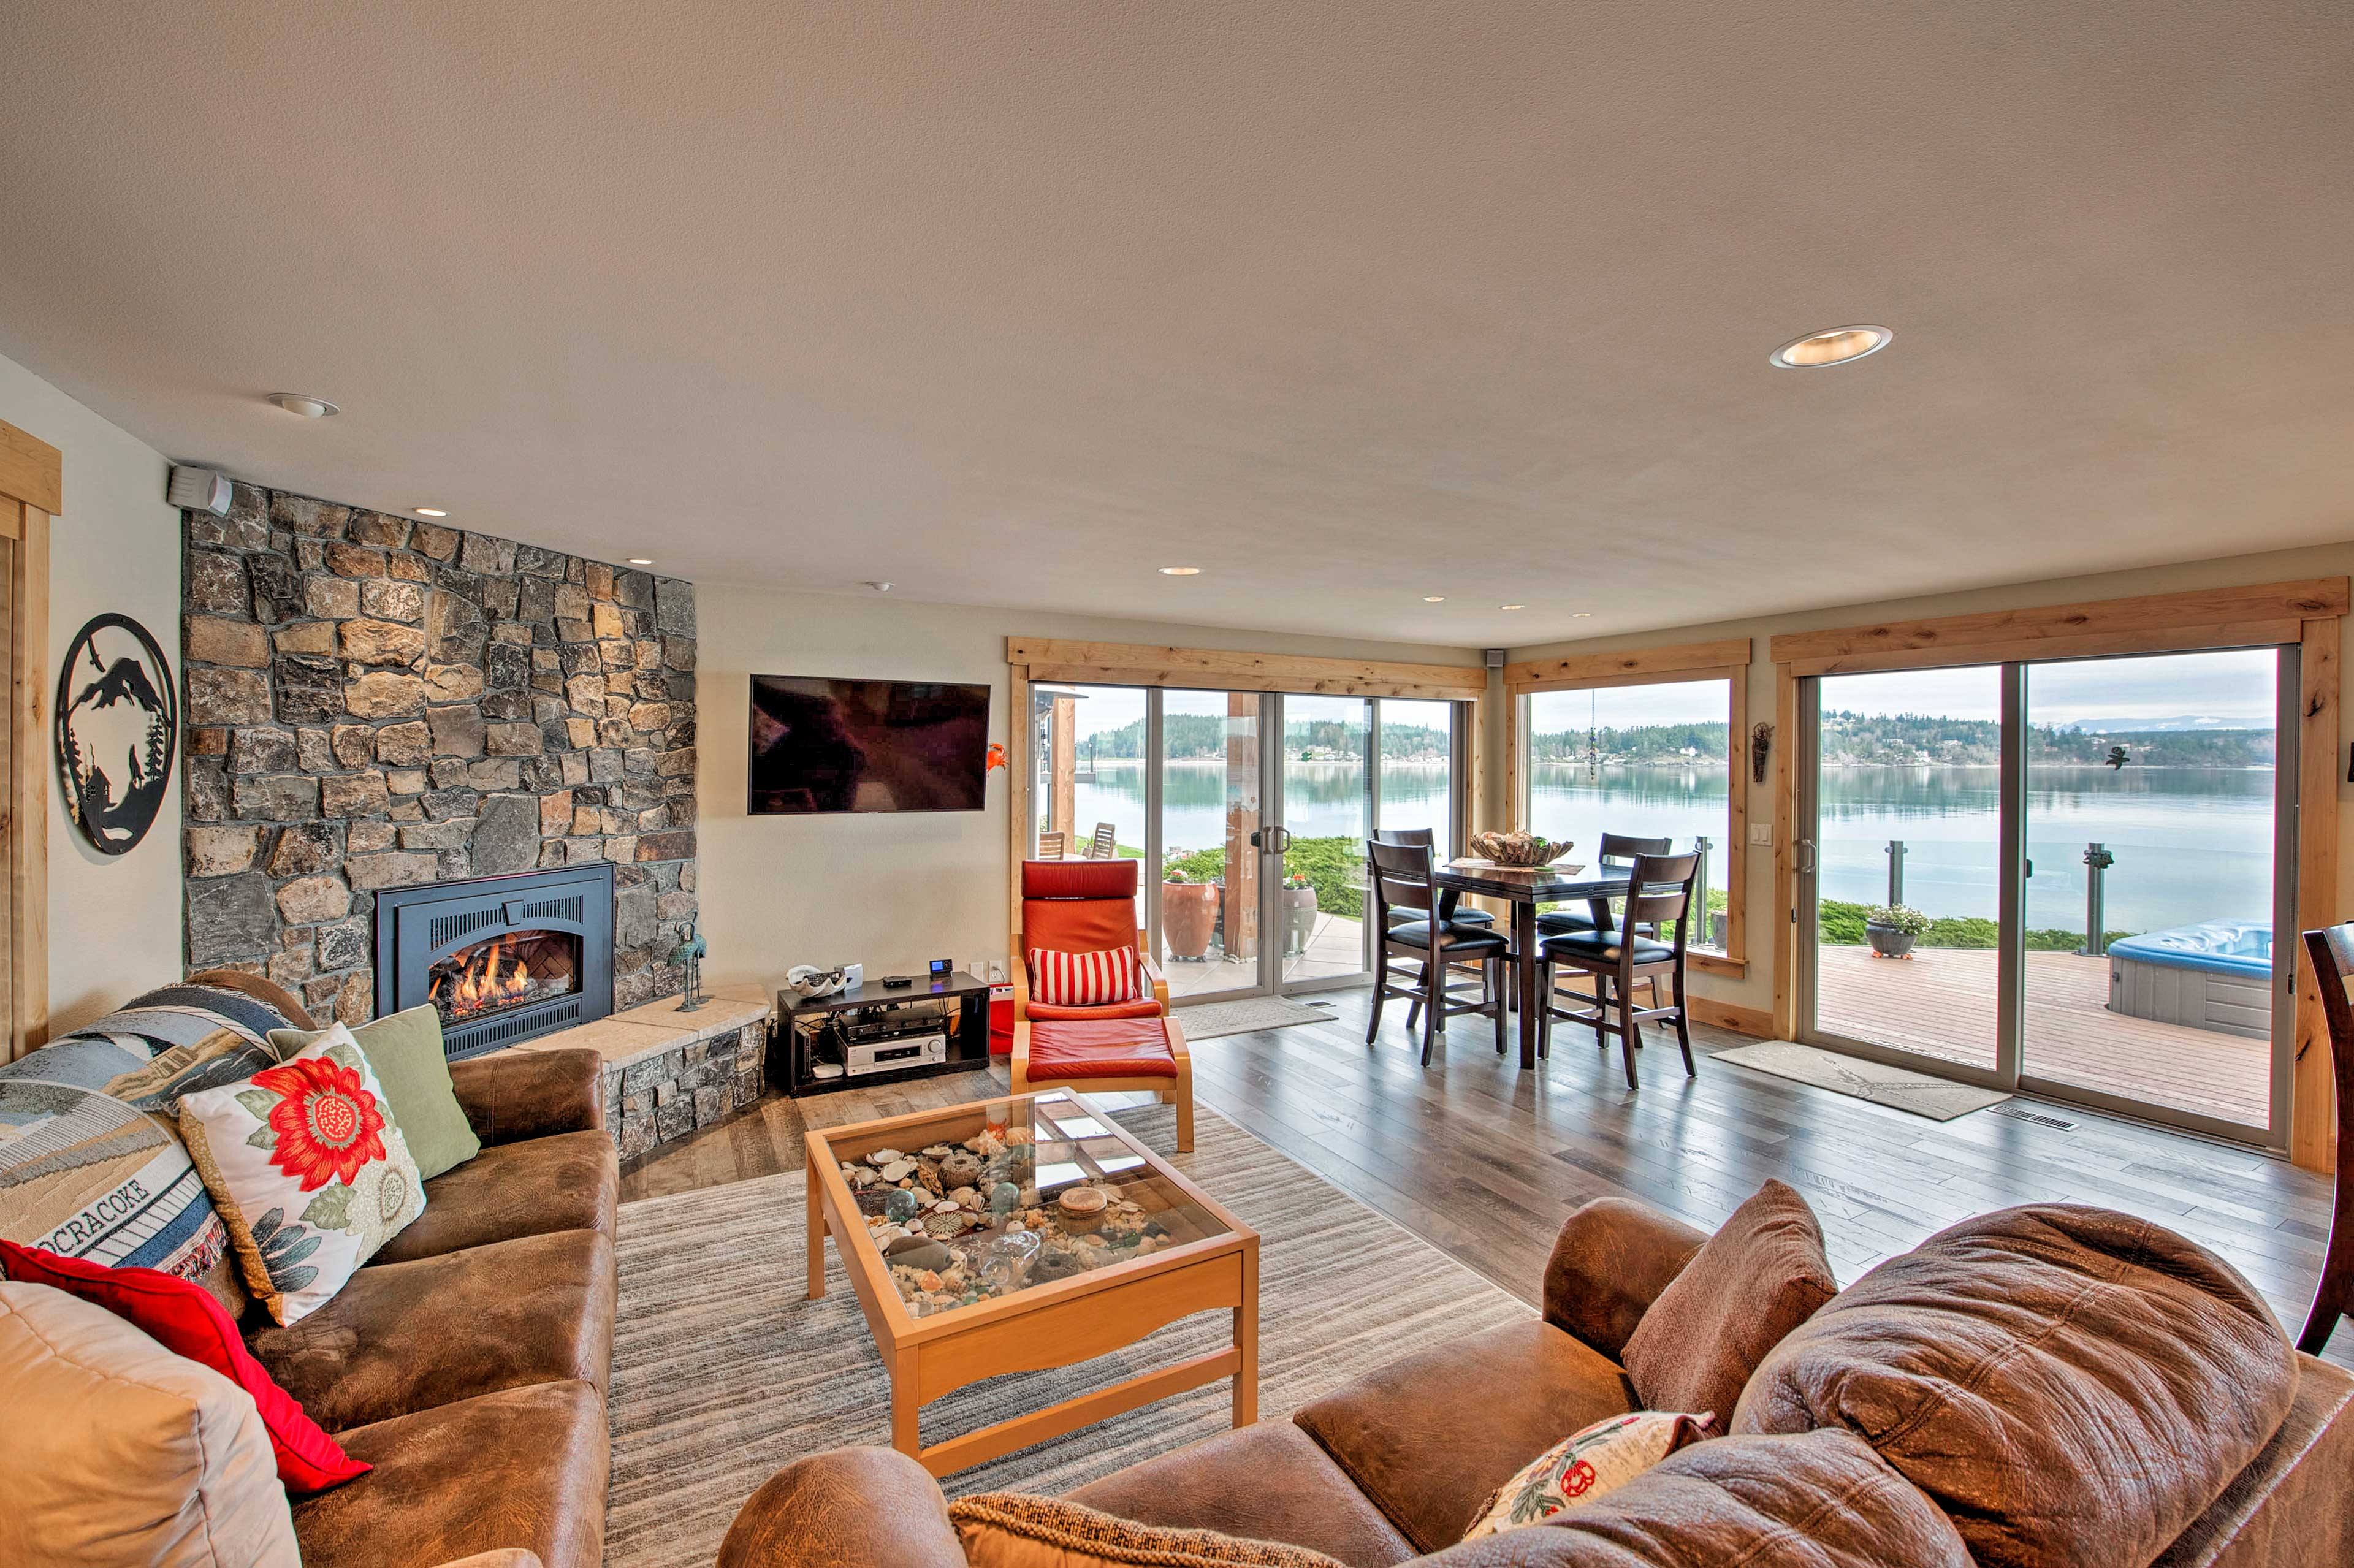 Unwind in the comfortably furnished living room and soak in the lakefront views.